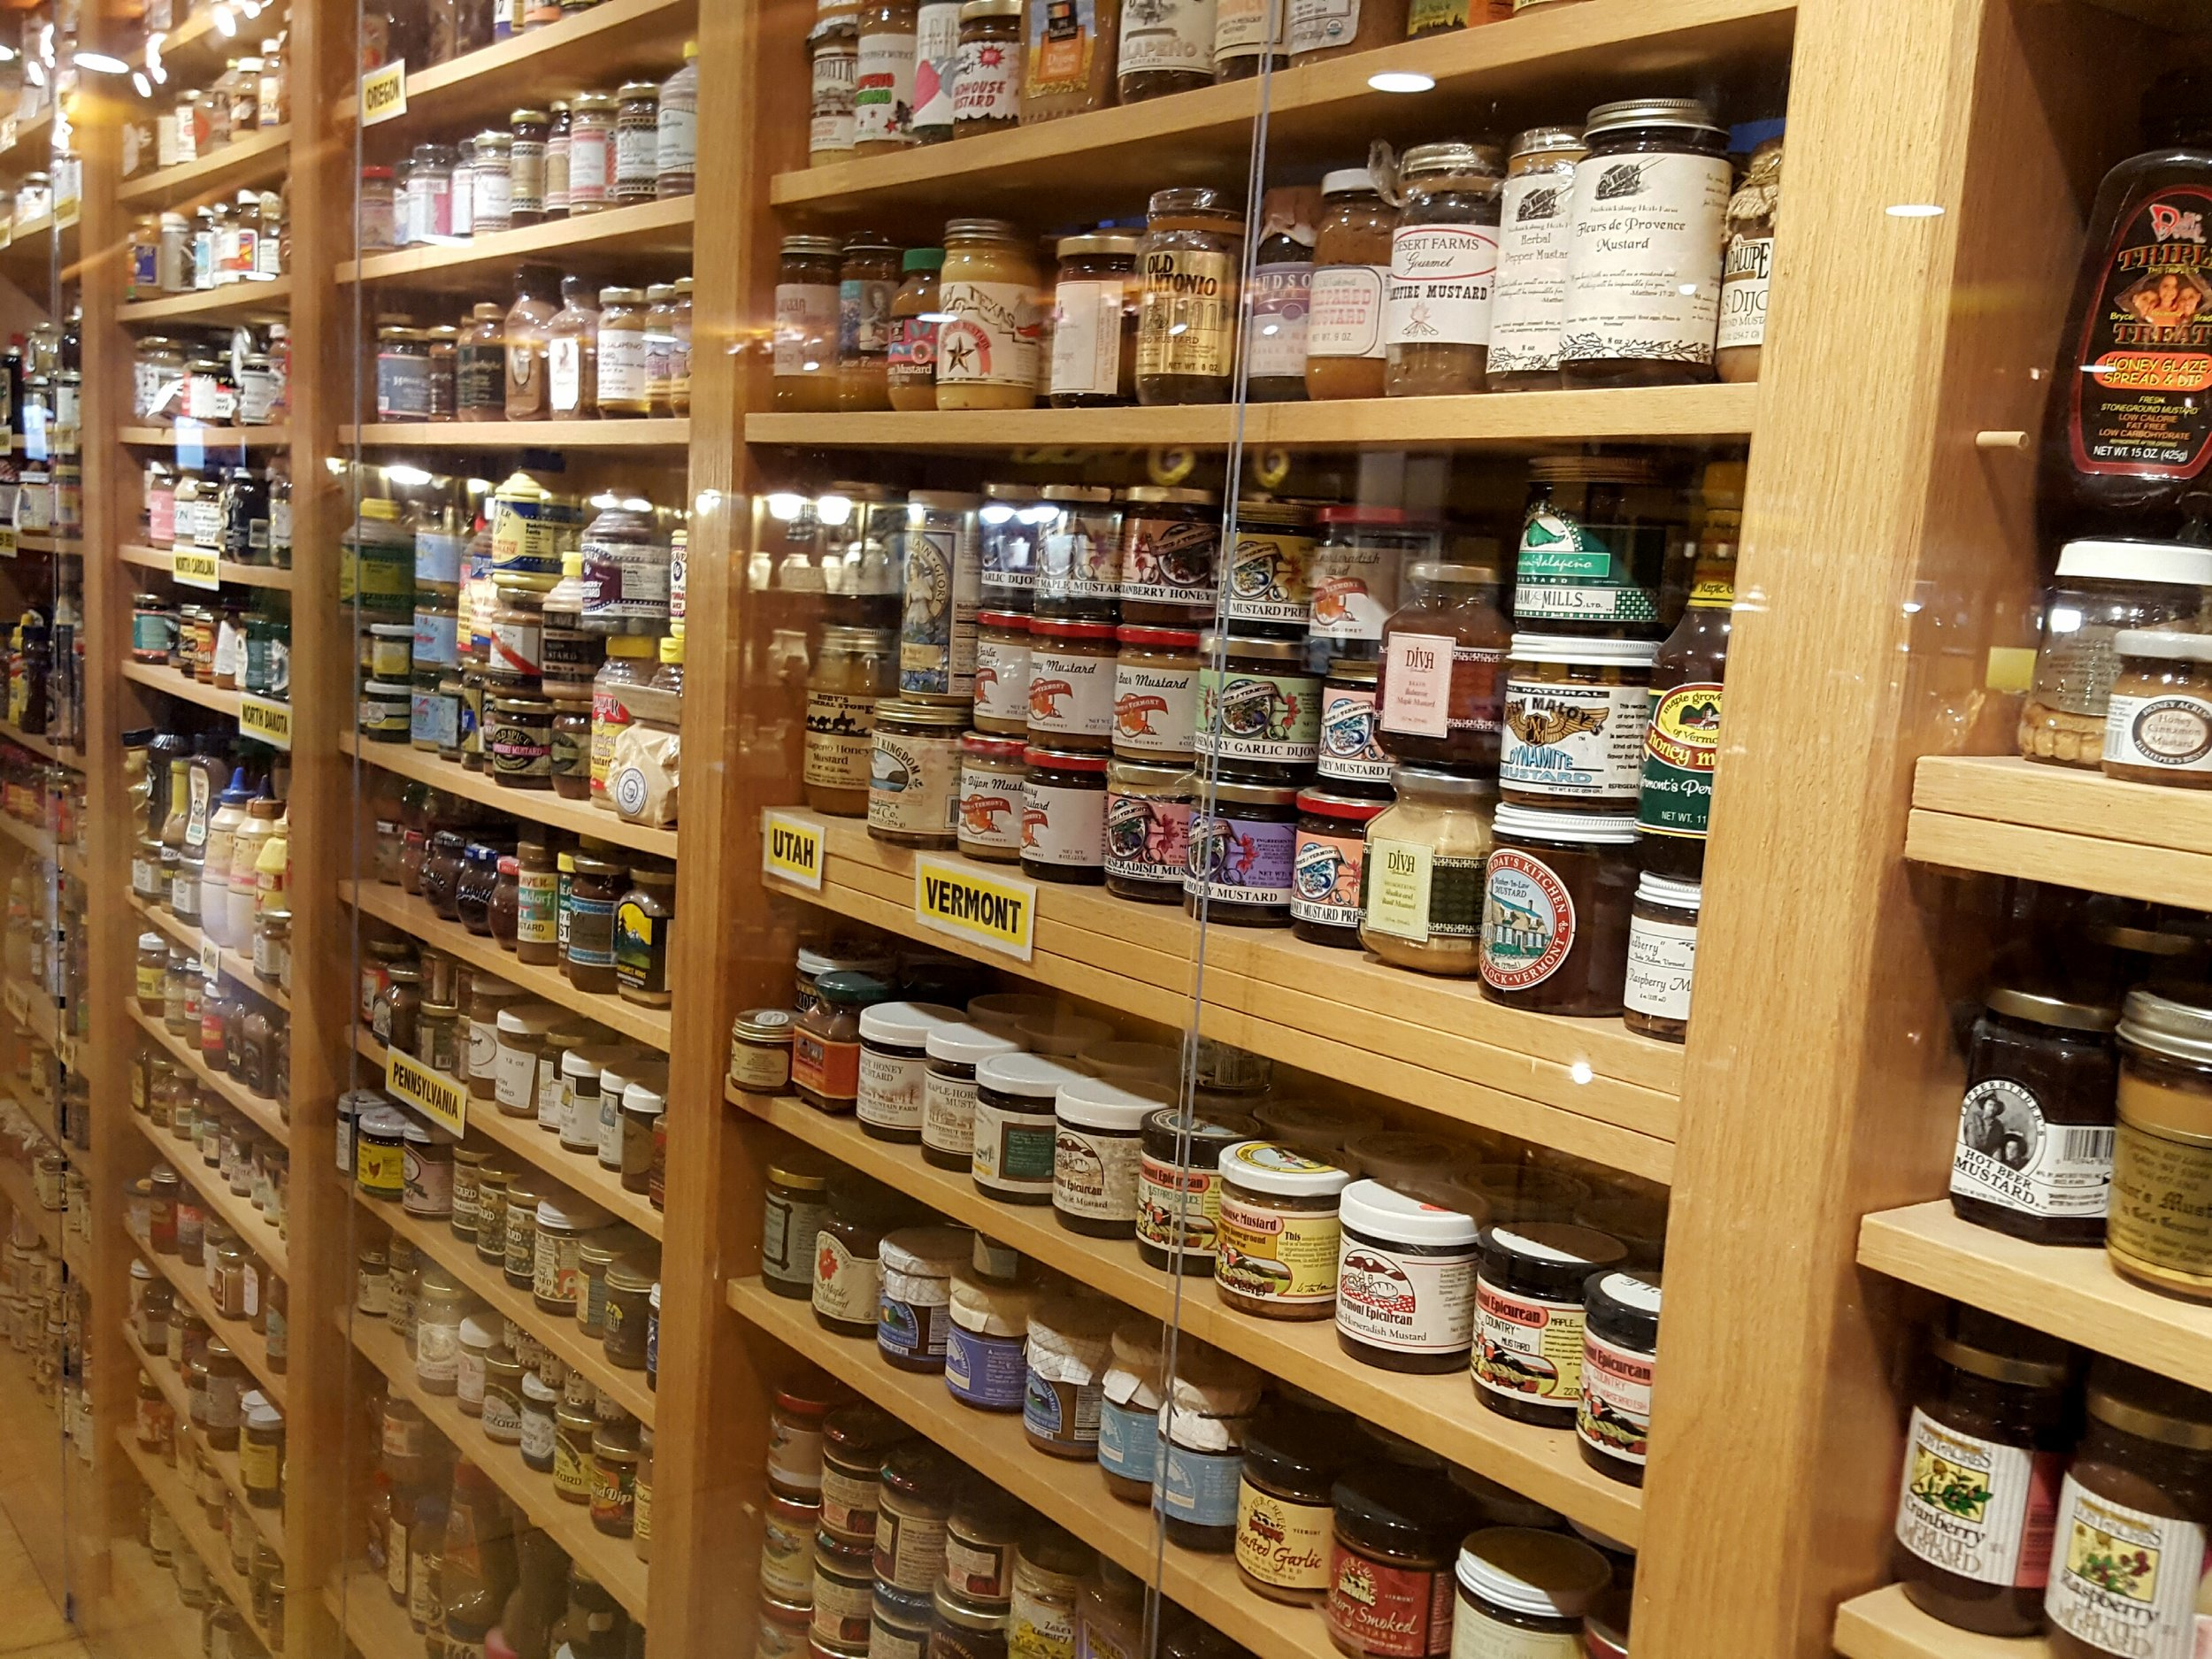 6,000 different mustards from around the world.